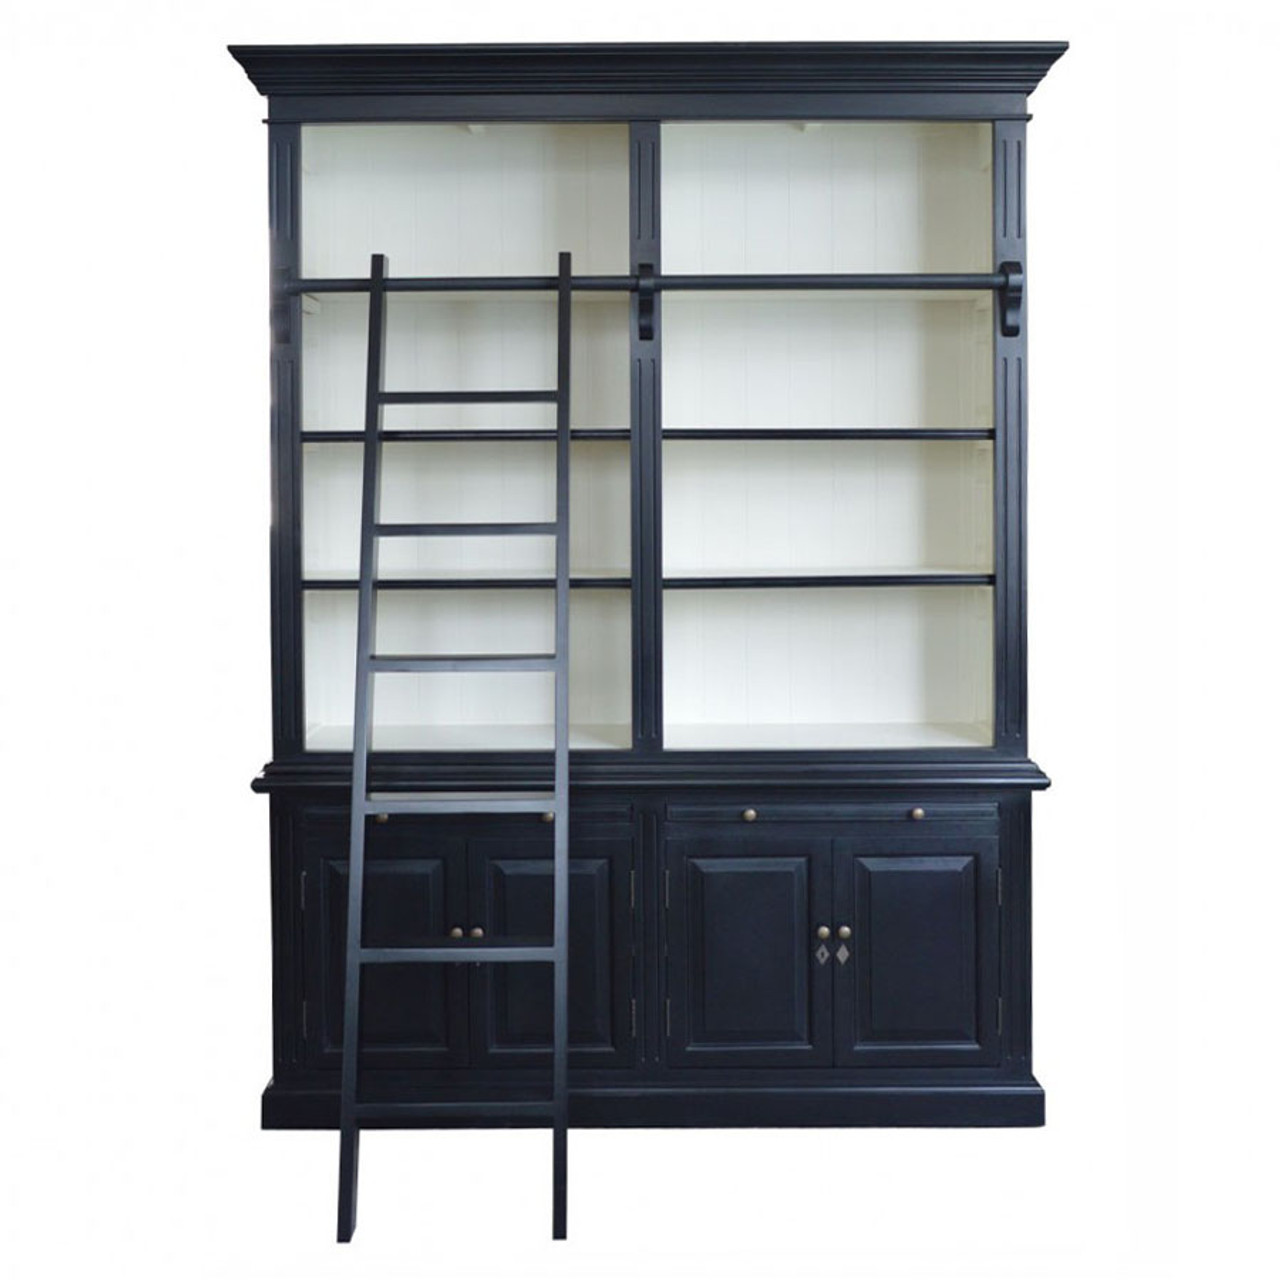 Harrington 2 Bay Library Bookcase Black White